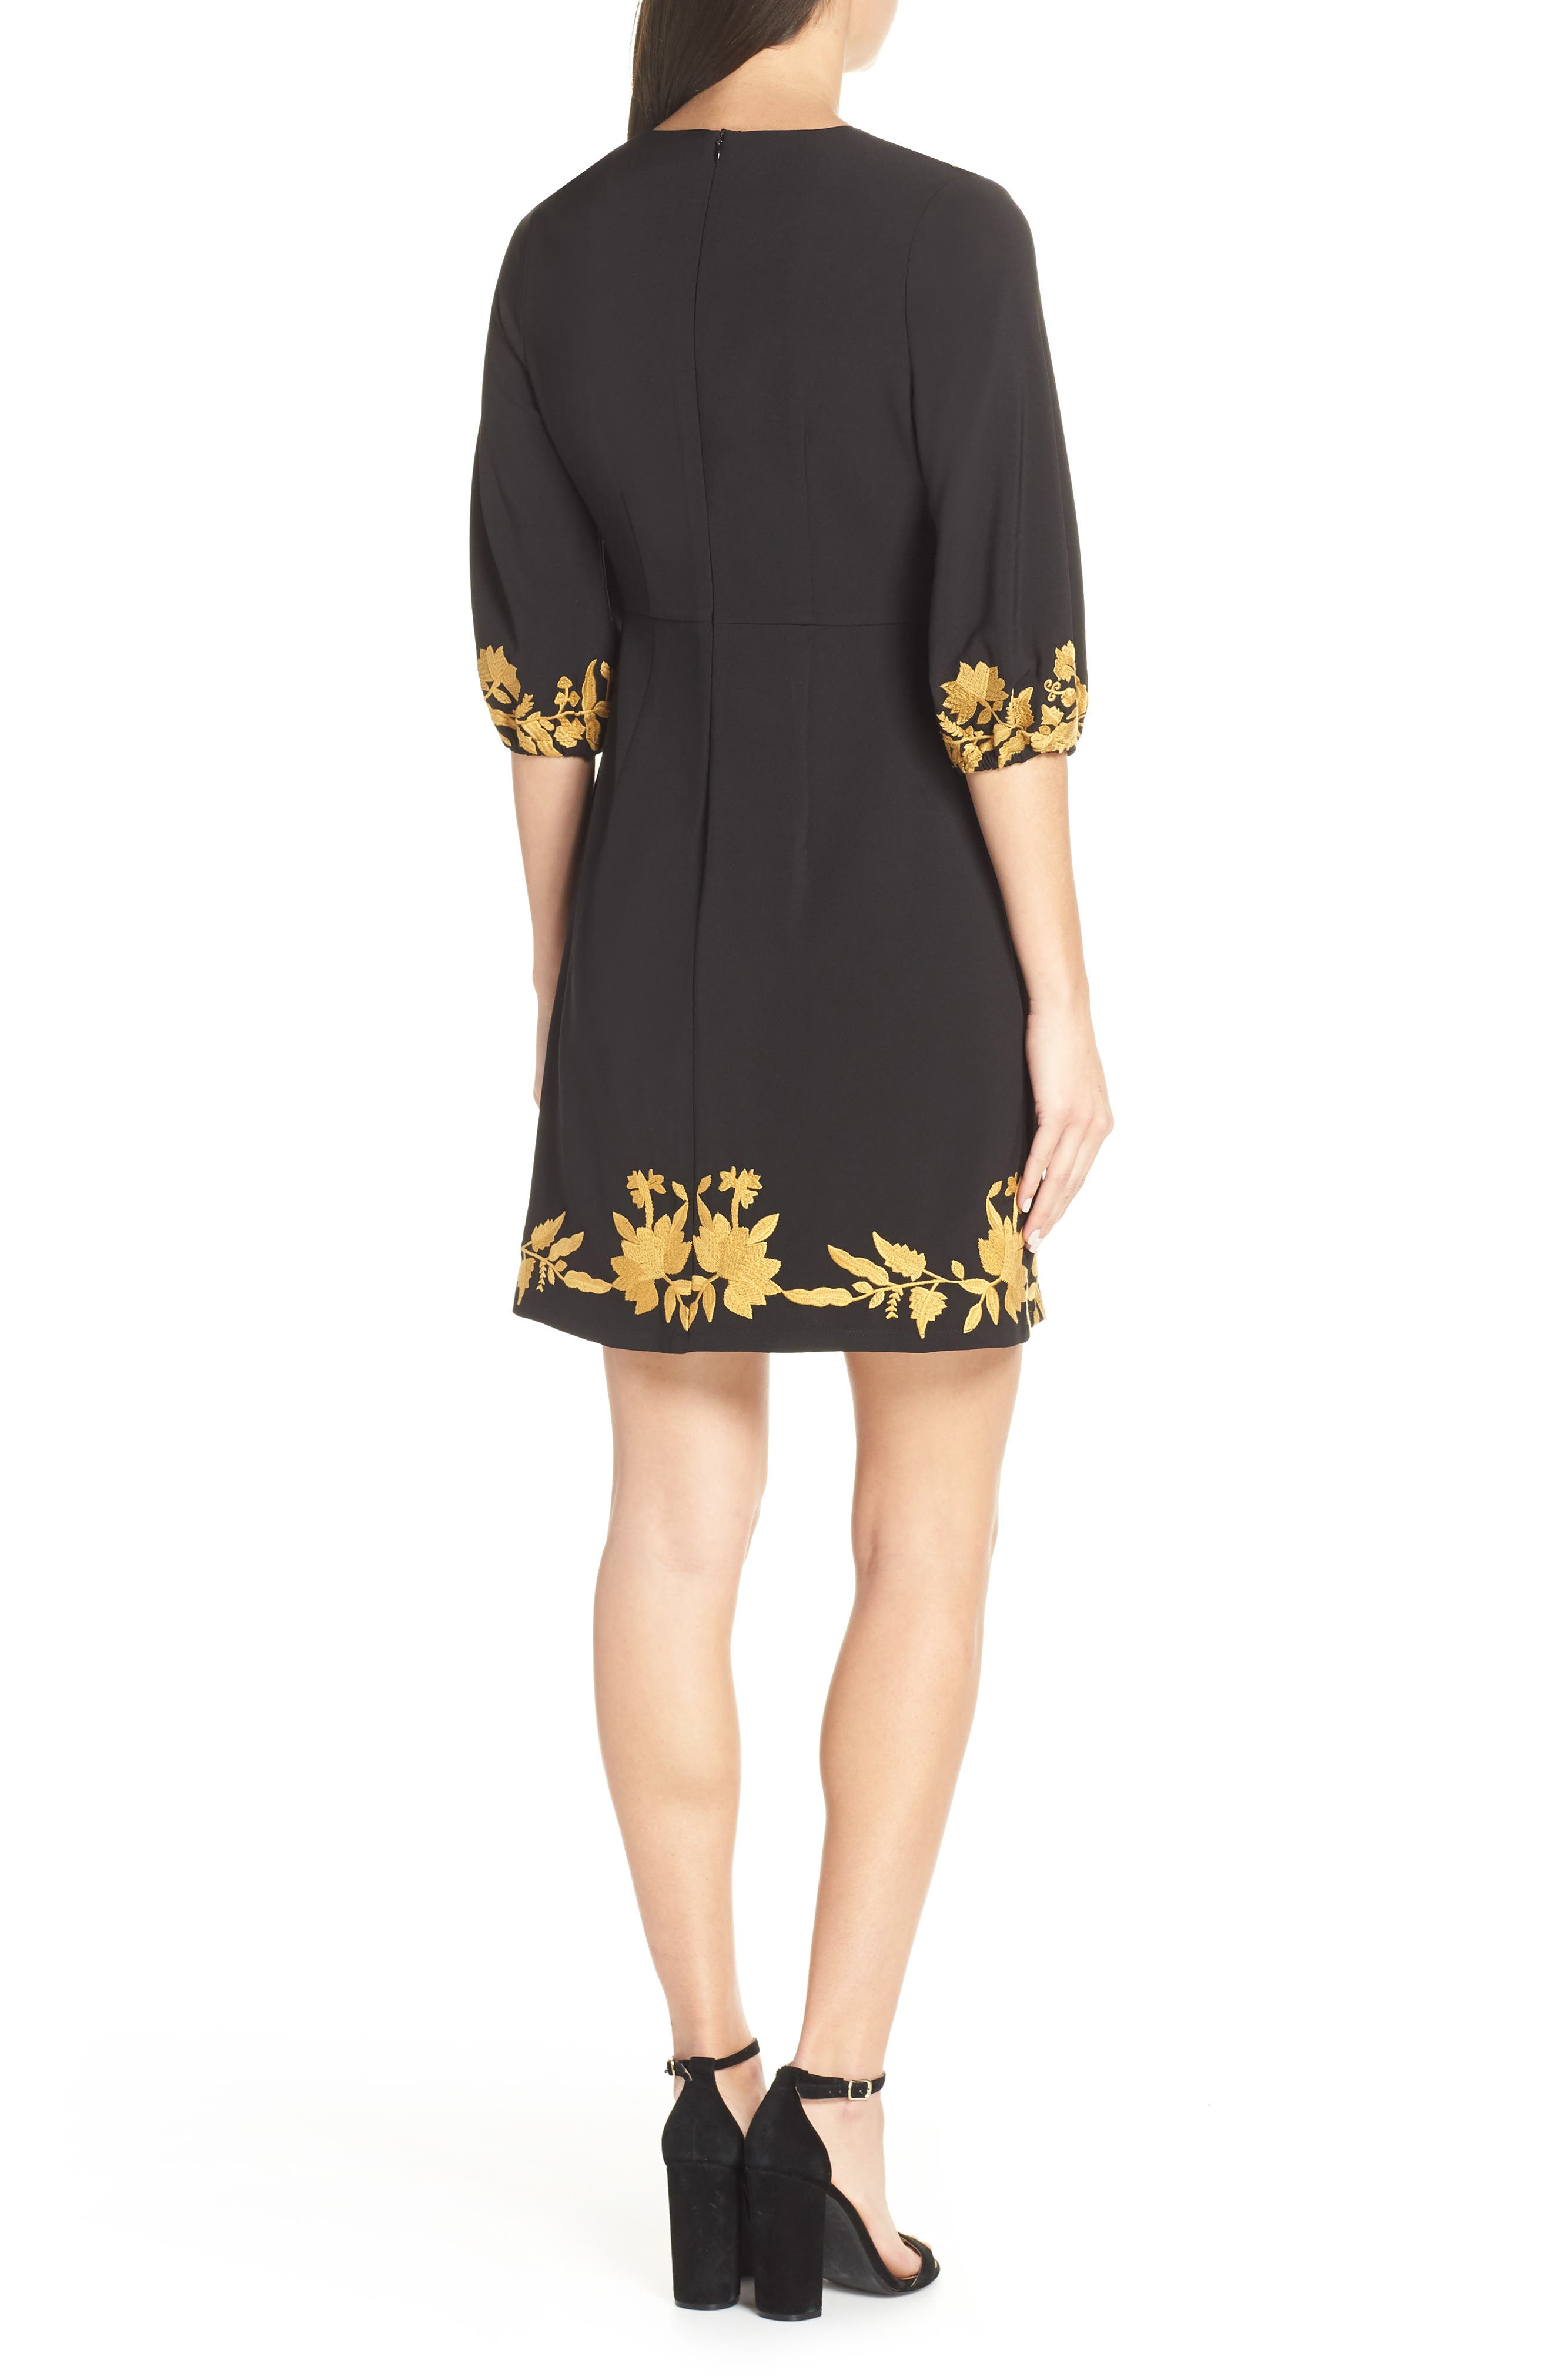 FOXIEDOX, Melia Embroidered Cocktail Dress, Alternate thumbnail 2, color, 001